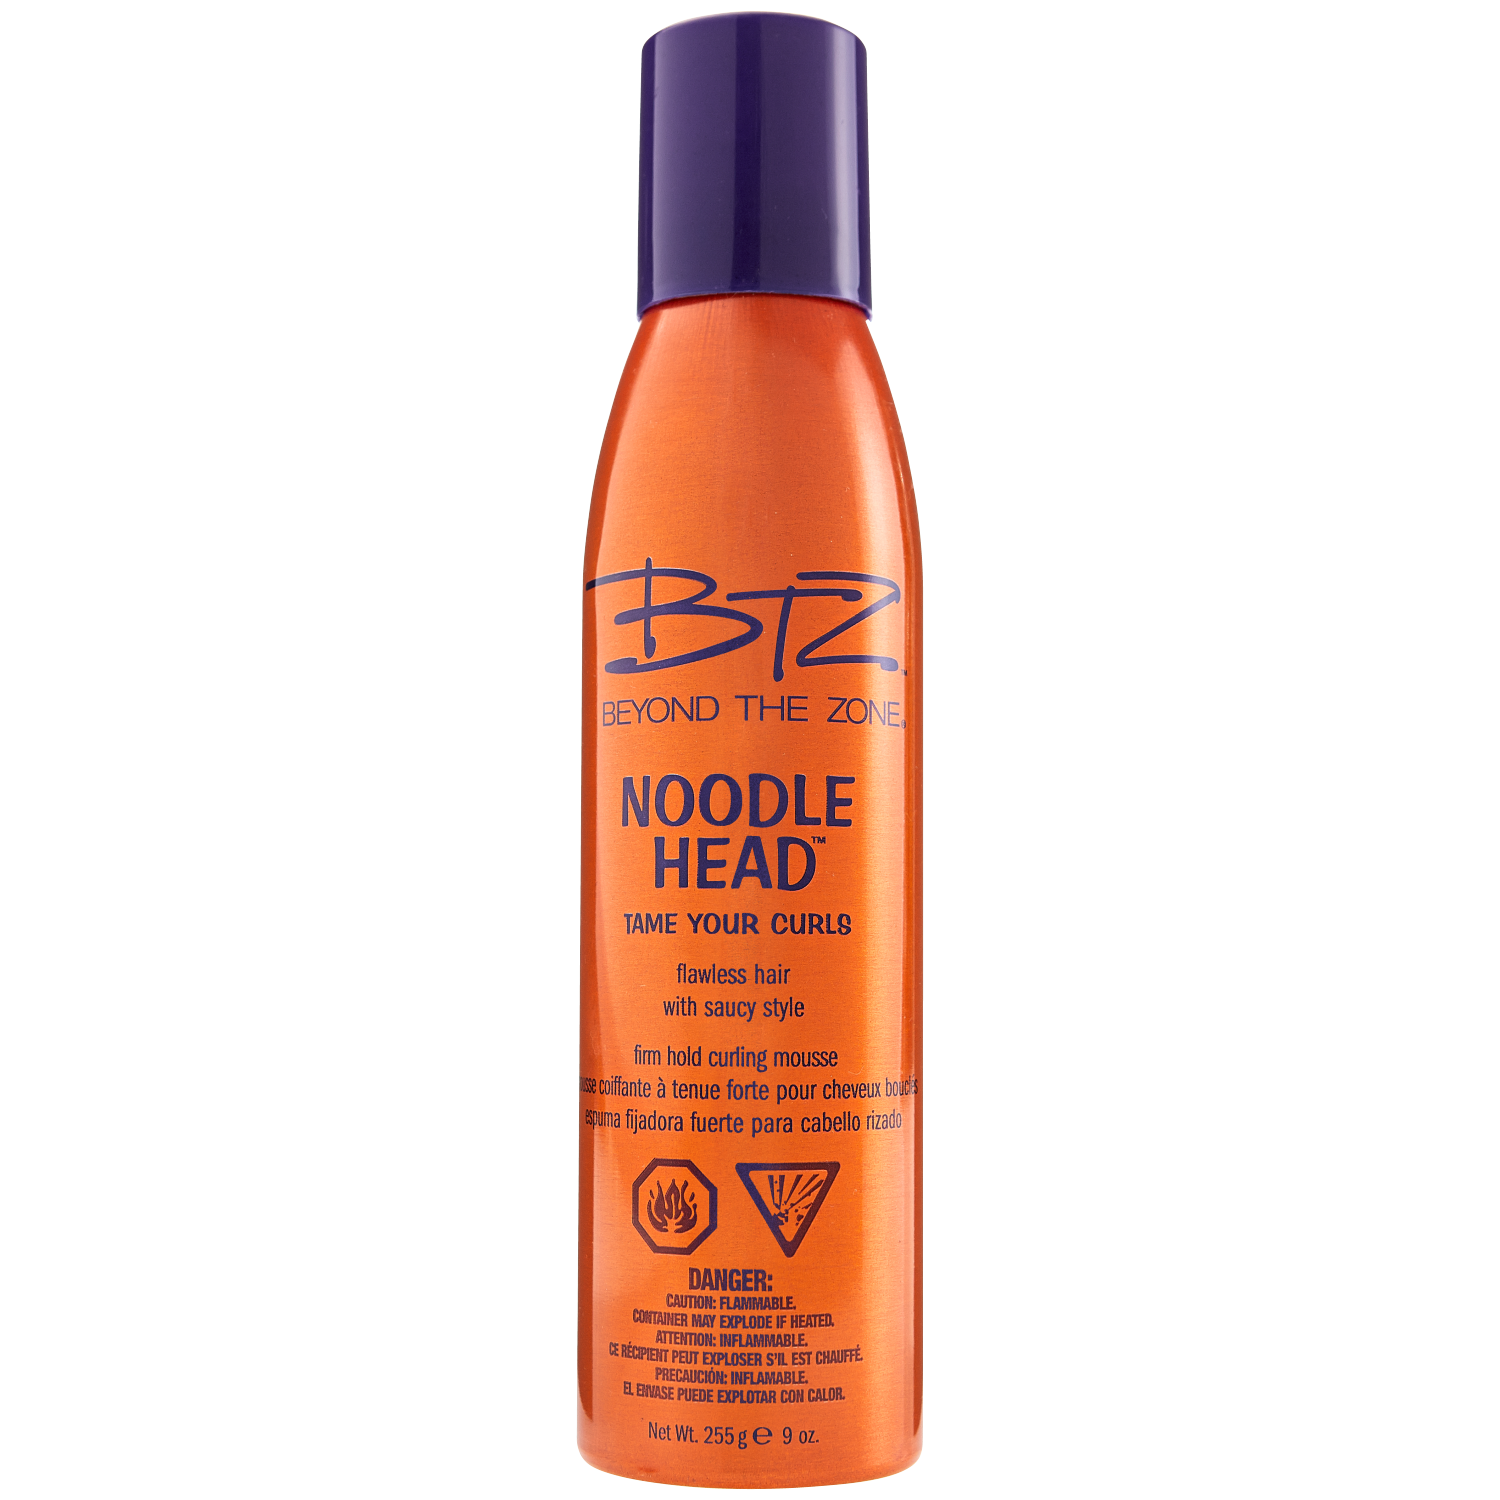 Beyond The Zone Noodle Head Curl Mousse